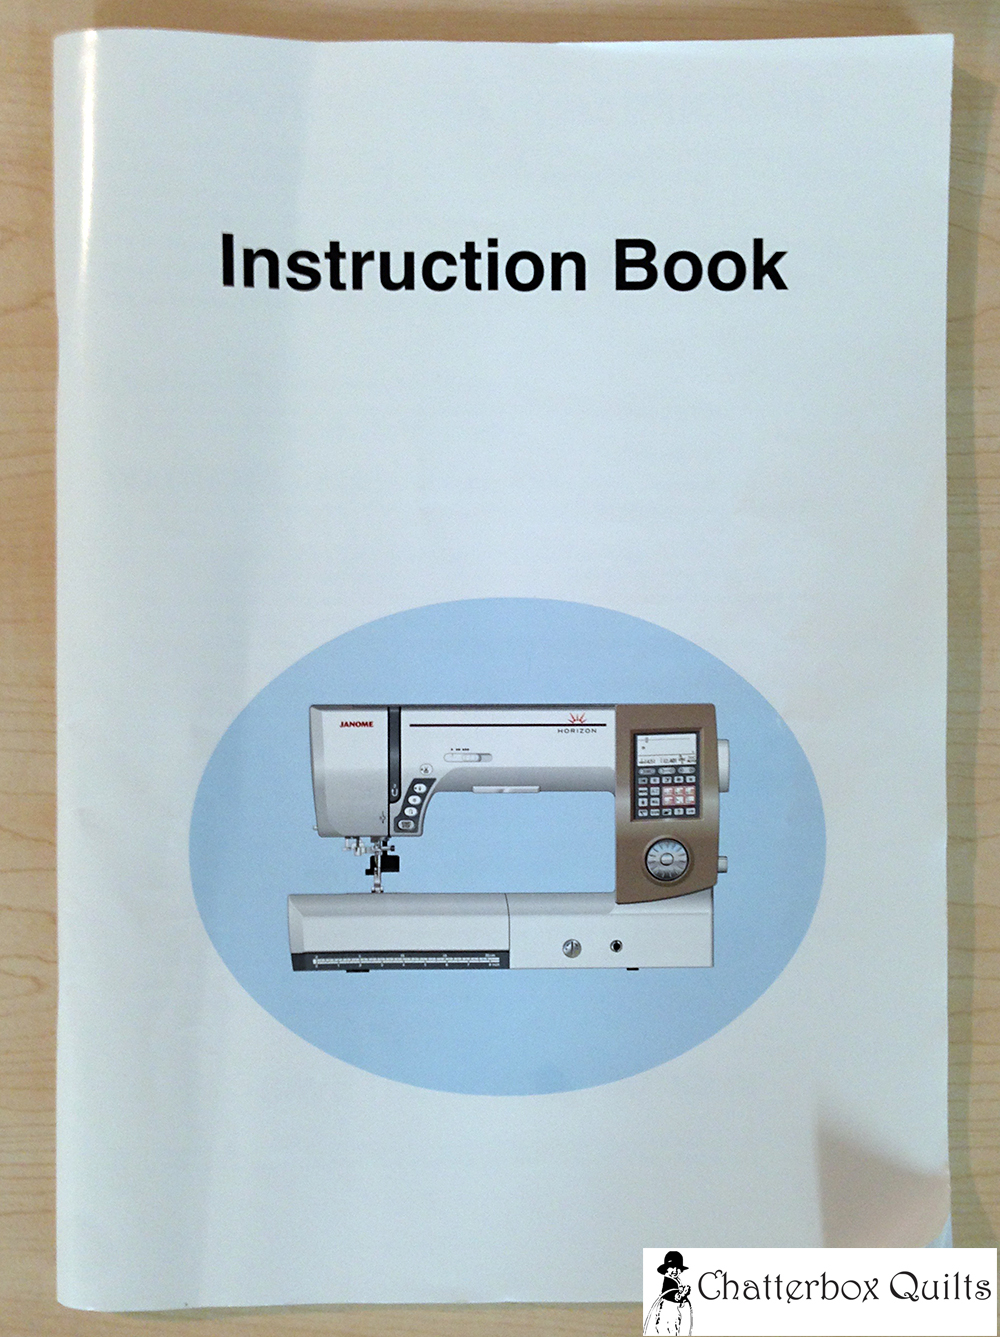 You should always have your sewing machine's manual close at hand.